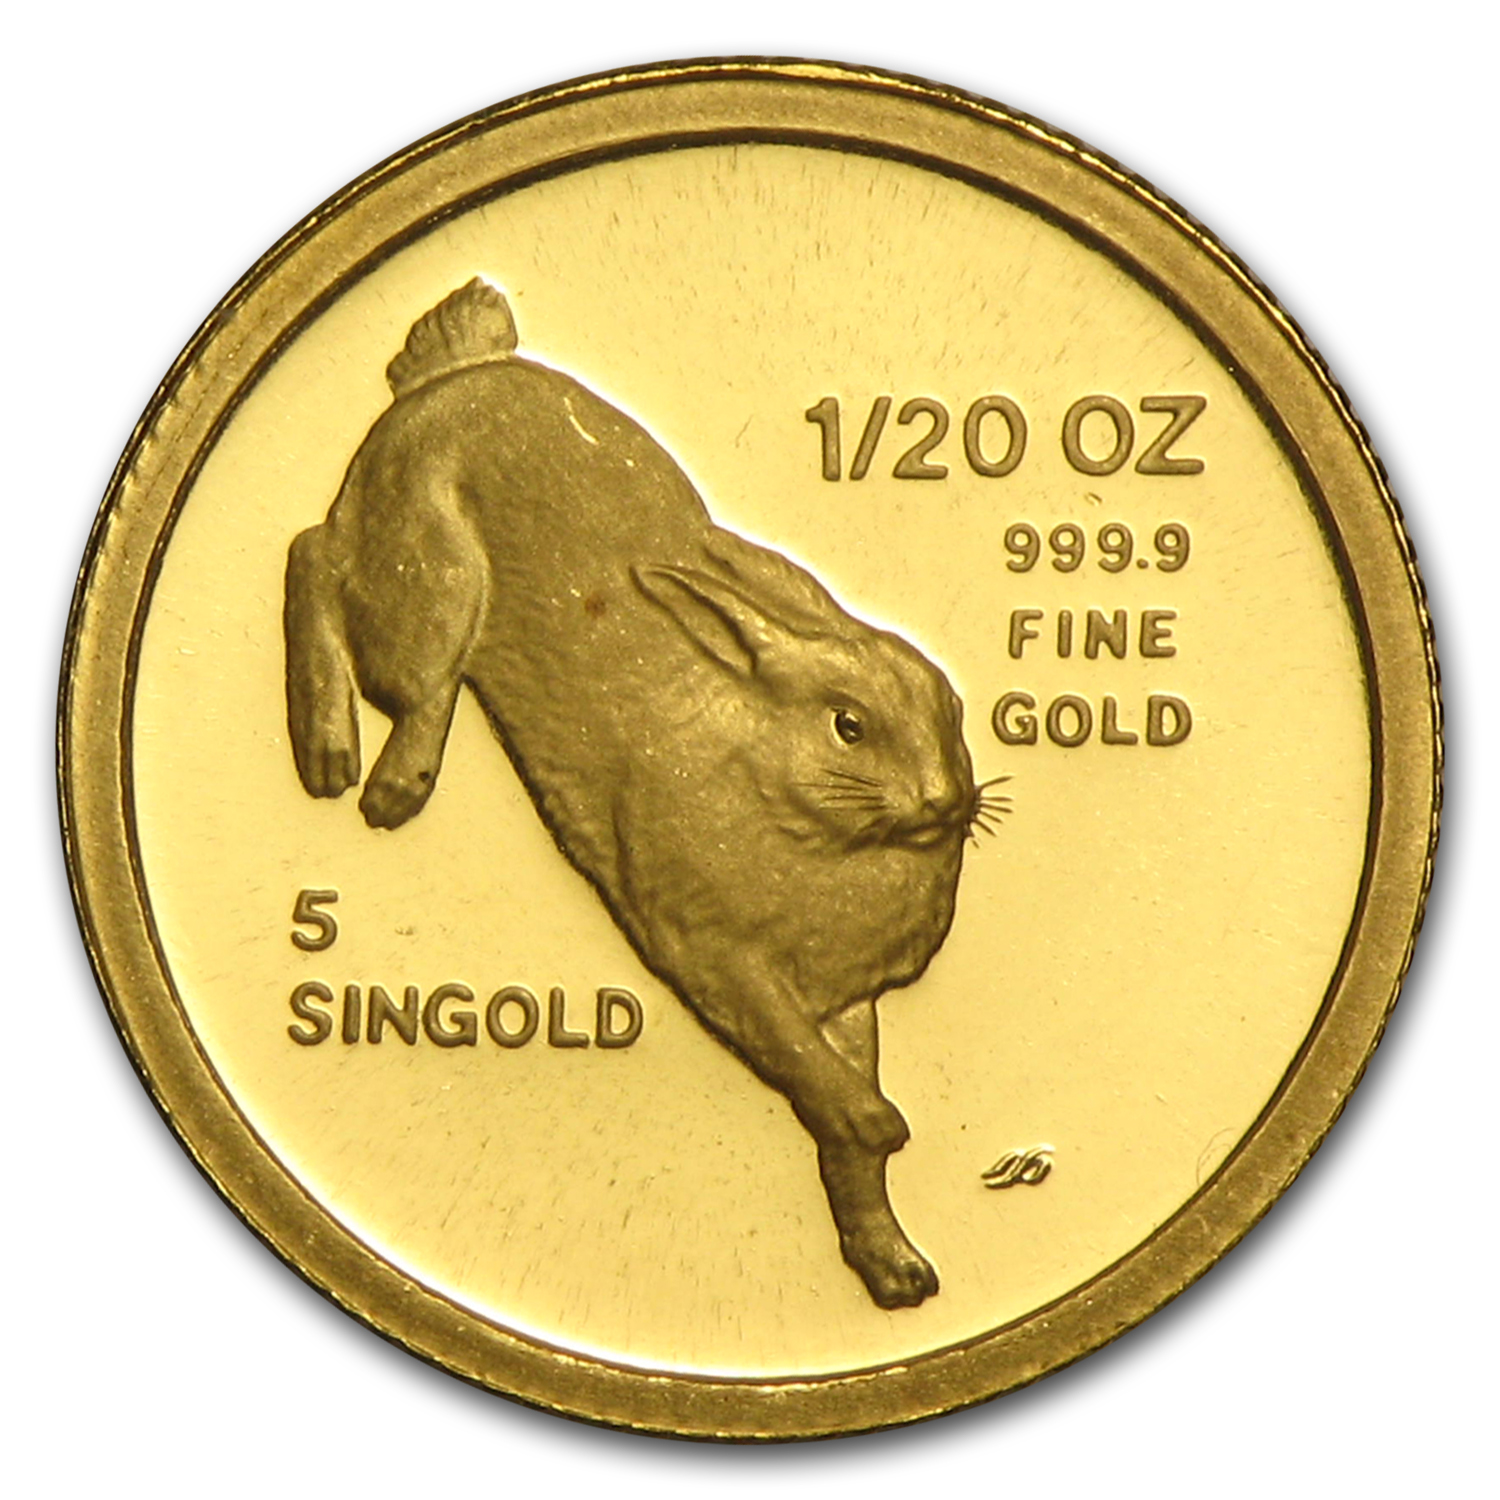 Singapore 1987 - Rabbit (5-Singold) Gold Coin (Proof)